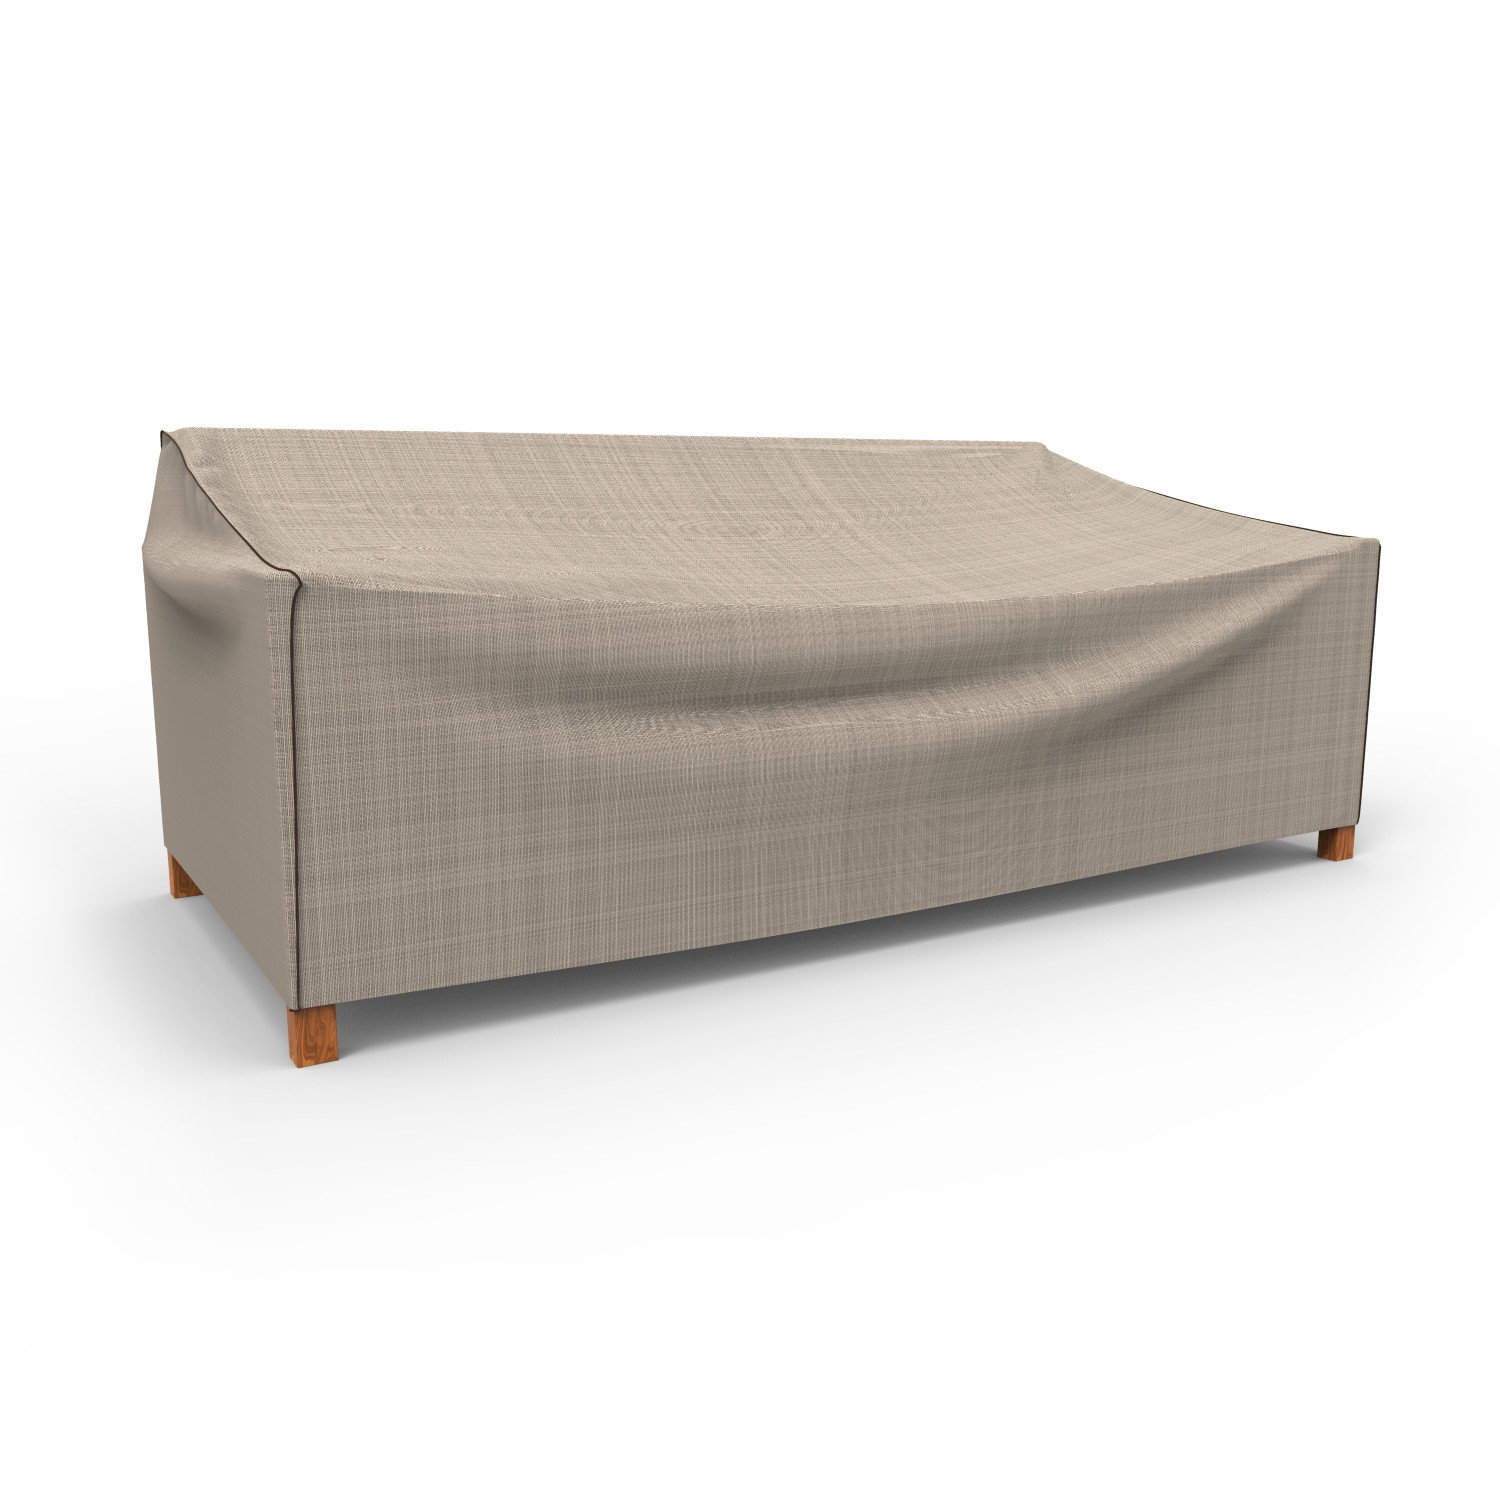 Budge P3W05PM1 English Garden Patio Sofa Cover, Extra Large, Two-Tone Tan by Budge